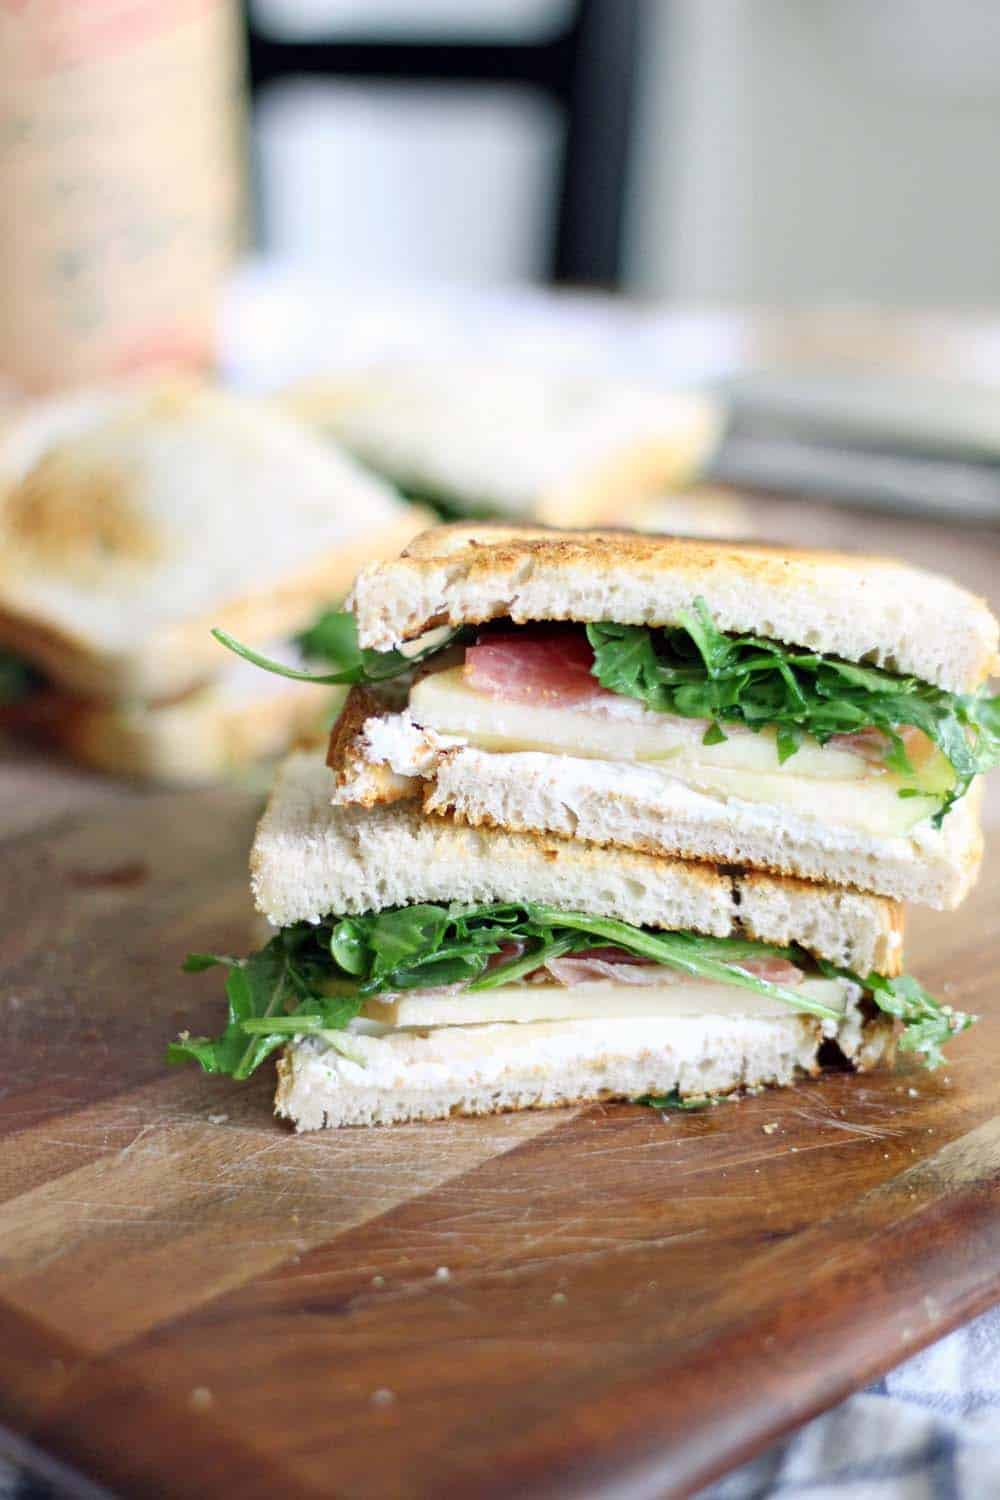 Apple and Prosciutto Sandwich with Goat Cheese and Arugula | This sandwich is the PERFECT combination of sweet, salty, tangy, and peppery. It takes 5 minutes to make and it's light and healthy, but will leave you feeling full and satisfied!